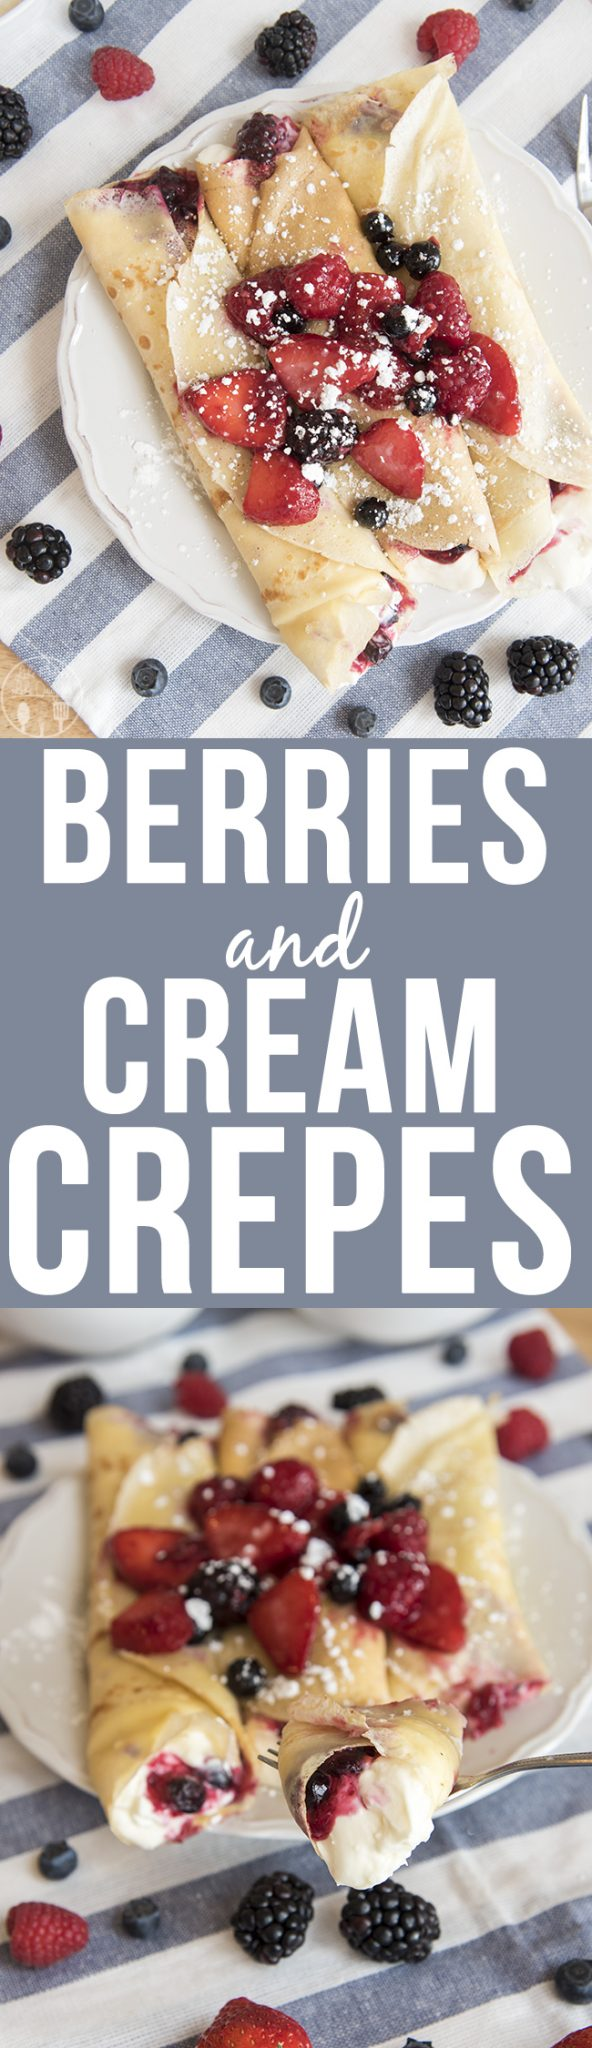 Berries and cream crepes are filled with a cheesecake like filling, and sweet juicy berries for a decadent breakfast or dessert.